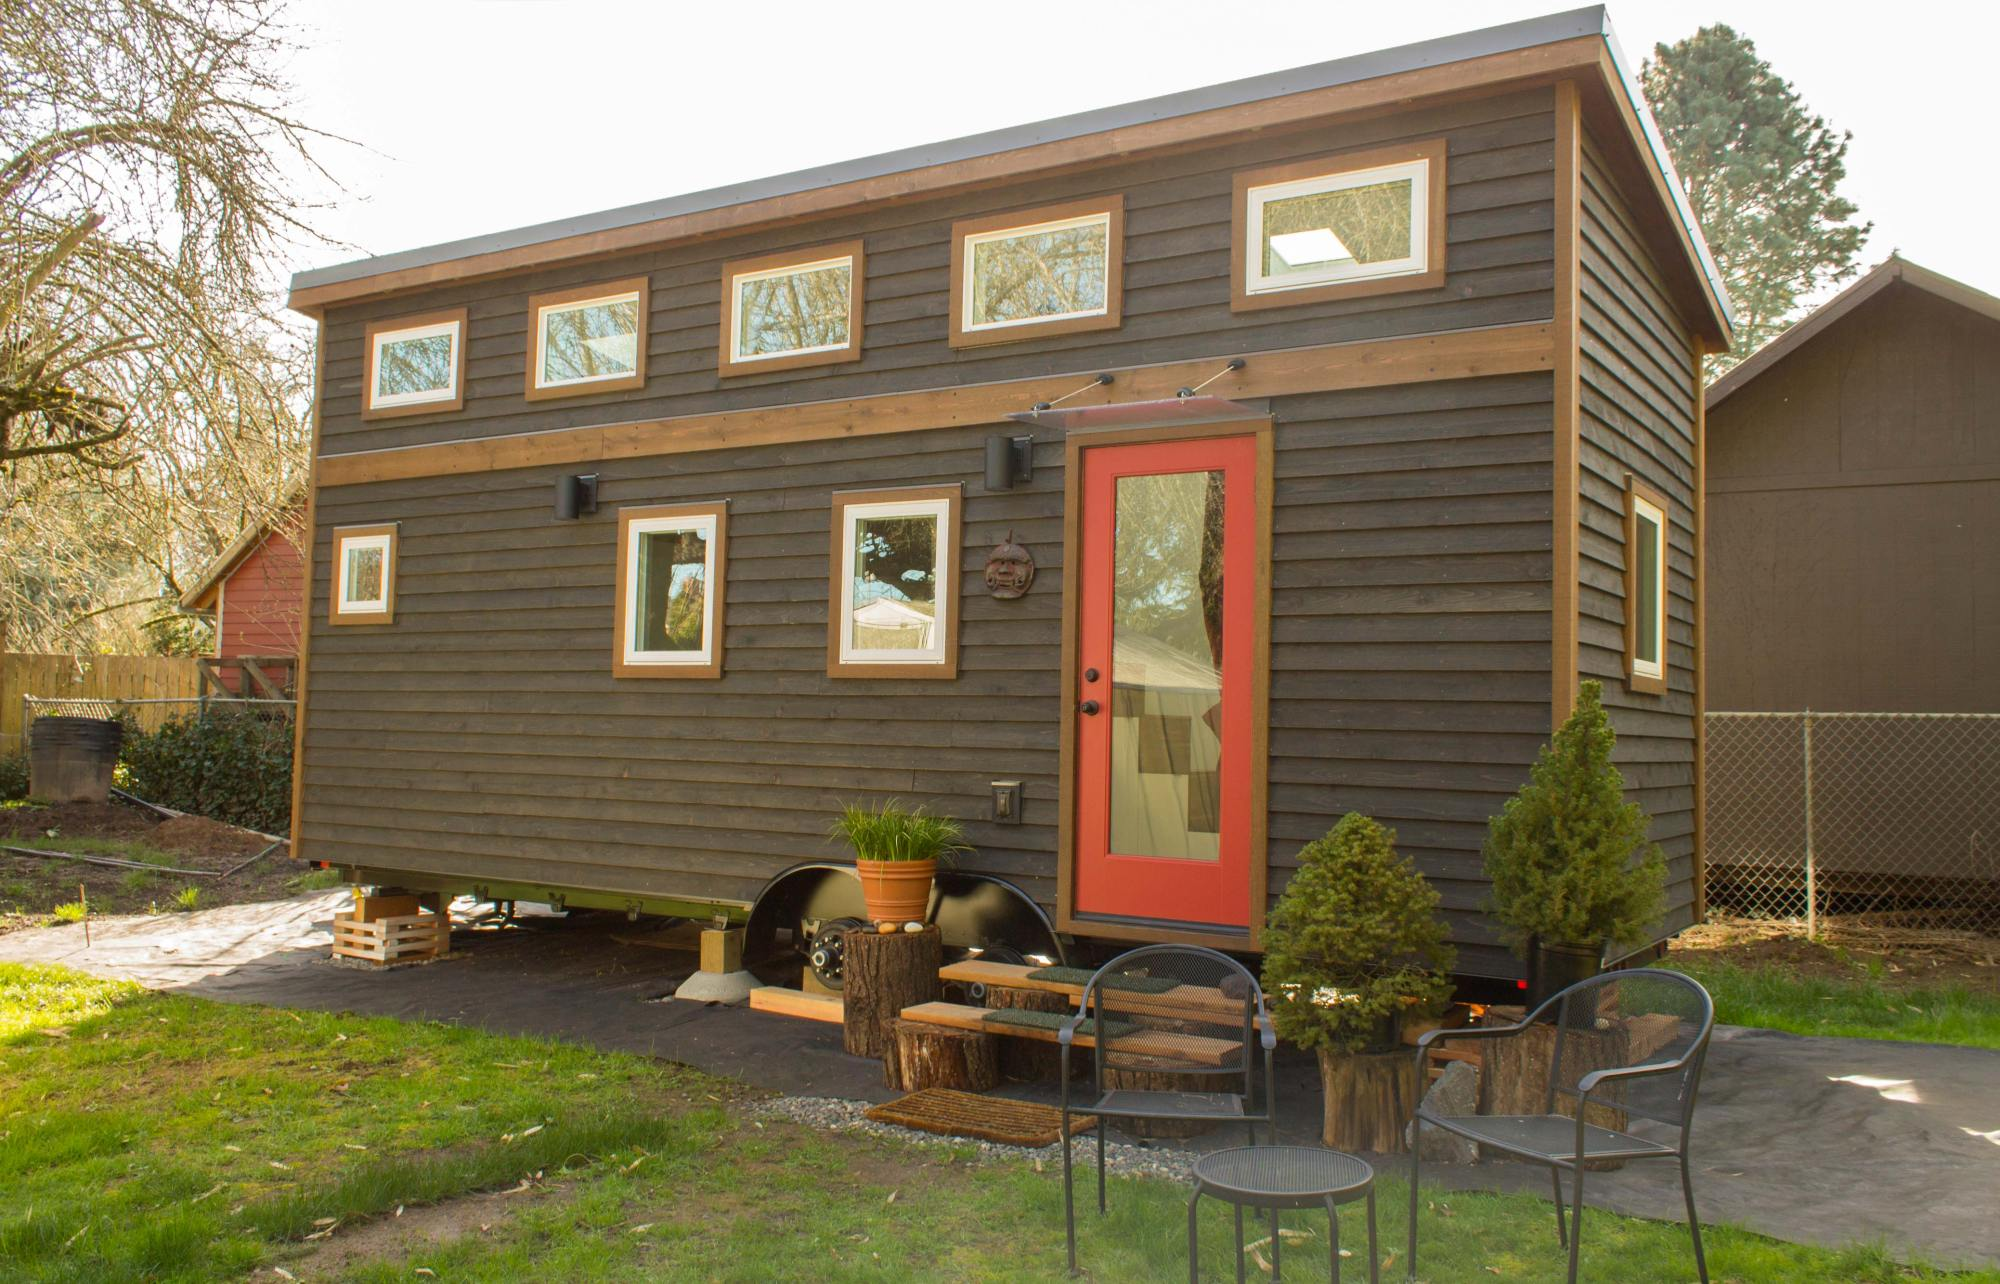 hight resolution of tiny house on pinterest plumbing tiny house and electrical wiring the hikari box tiny house plans